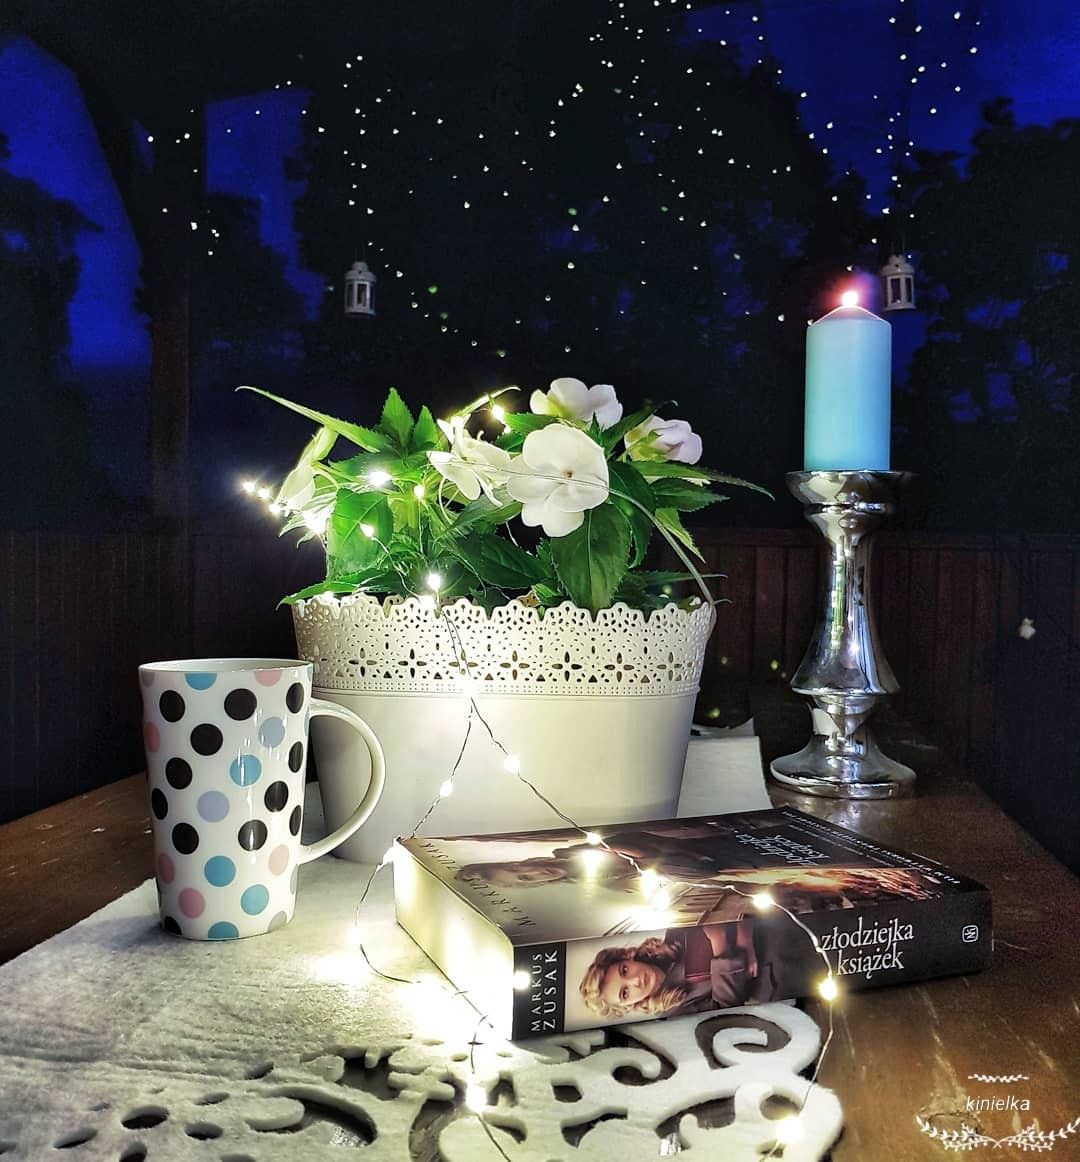 Flowers Book Books Night Candles Garden Love Ikea Homedecor Decorations Candle Night Garden Candles Mugs